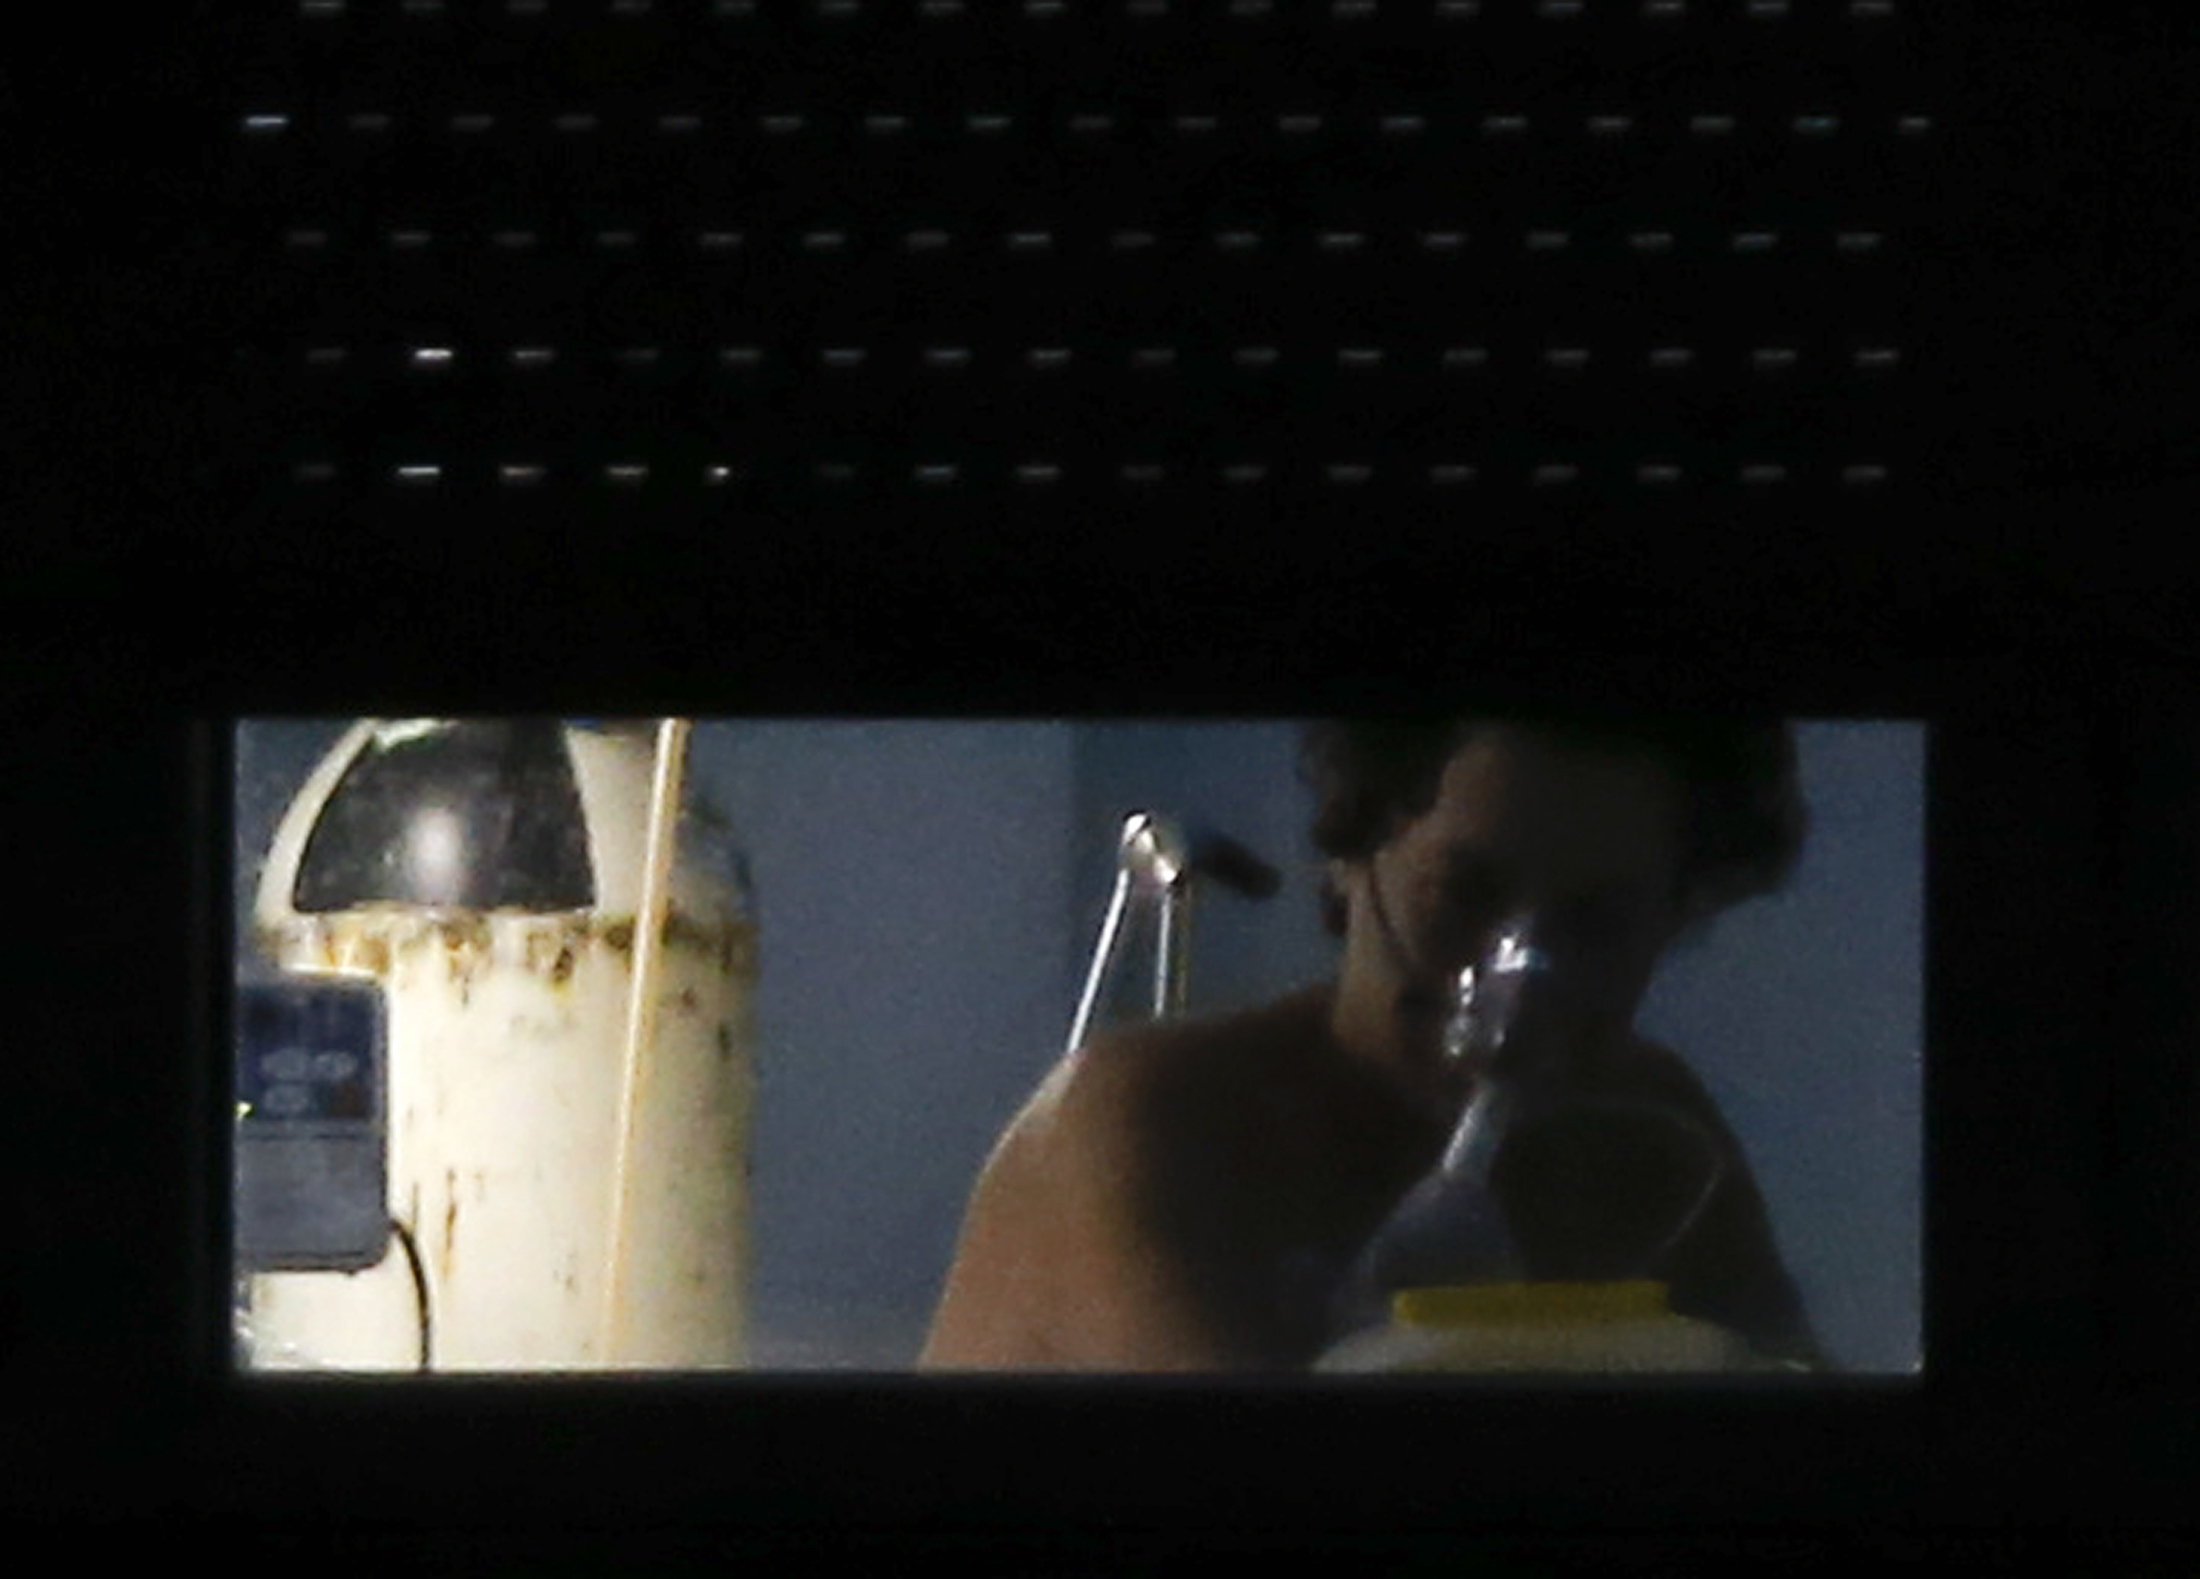 Teresa Romero, the Spanish nurse who contracted Ebola, is seen inside her room at an isolation ward on the sixth floor at Madrid's Carlos III Hospital, Oct. 11, 2014.